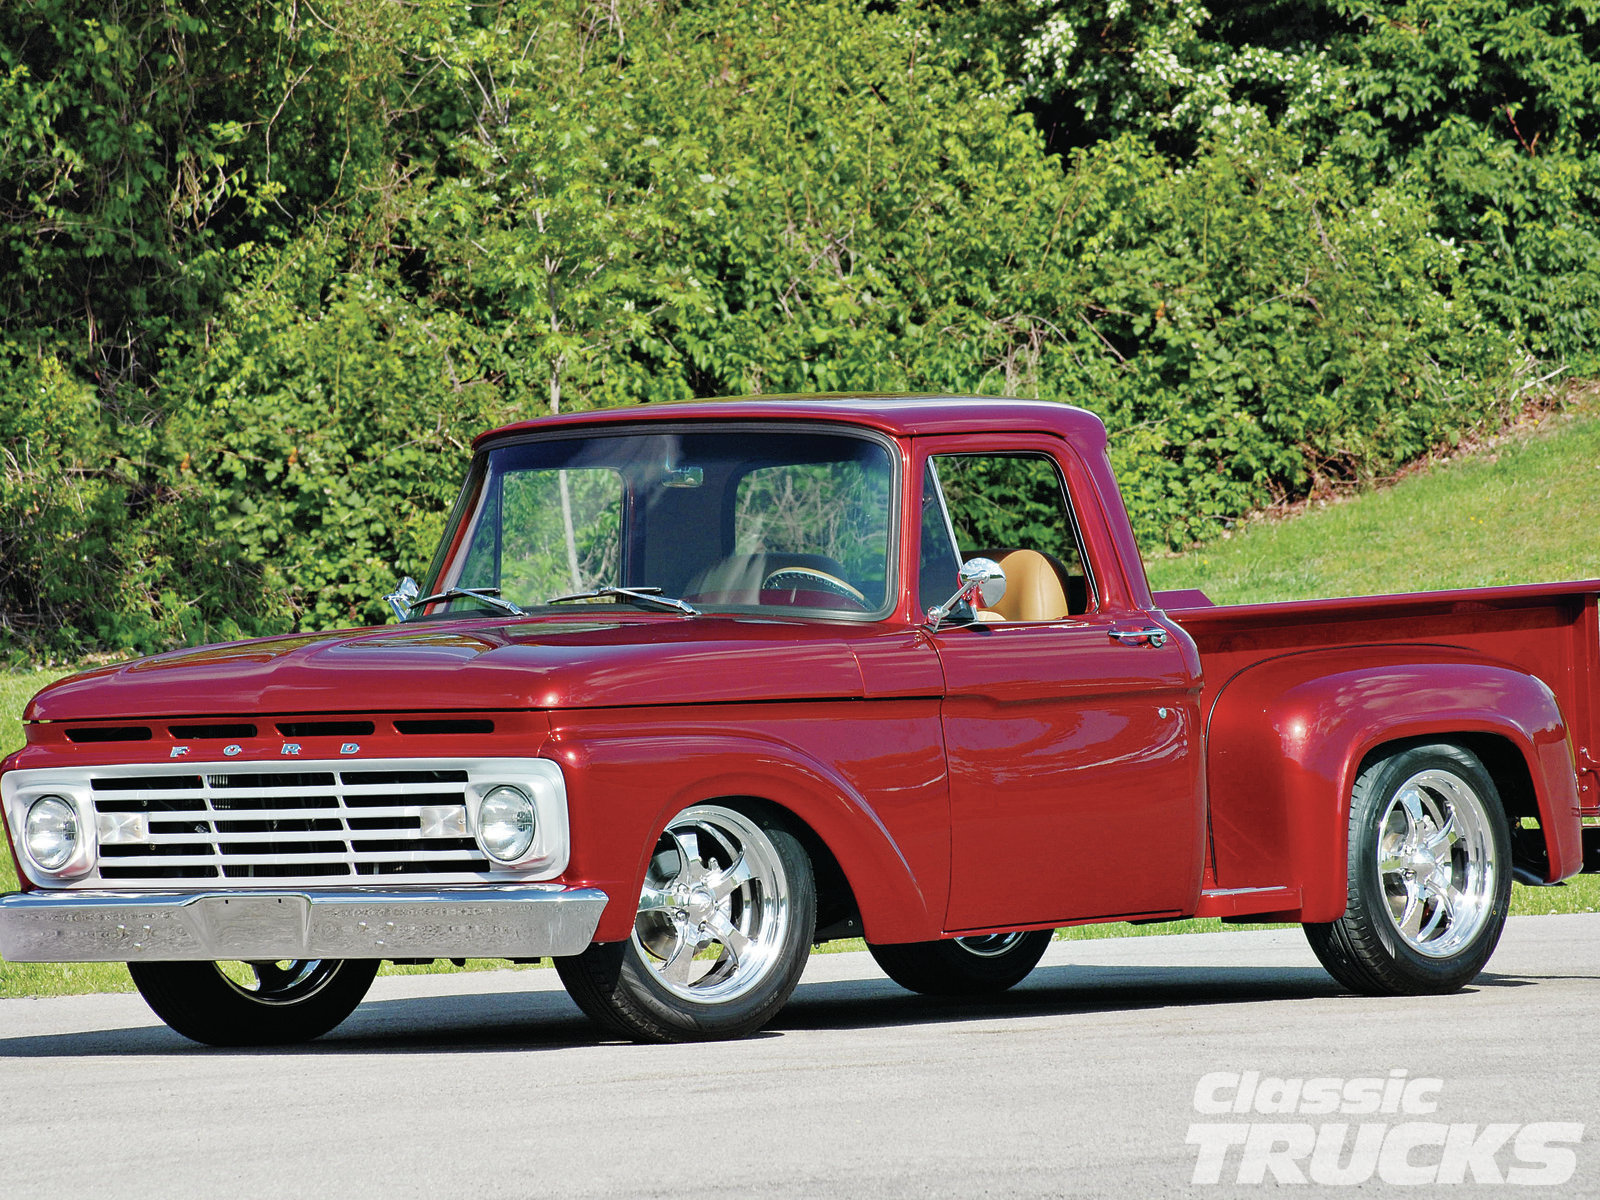 Wallpapers Old Ford Truck F100 Ford Old Truck Re Downloadsinfo 1600x1200